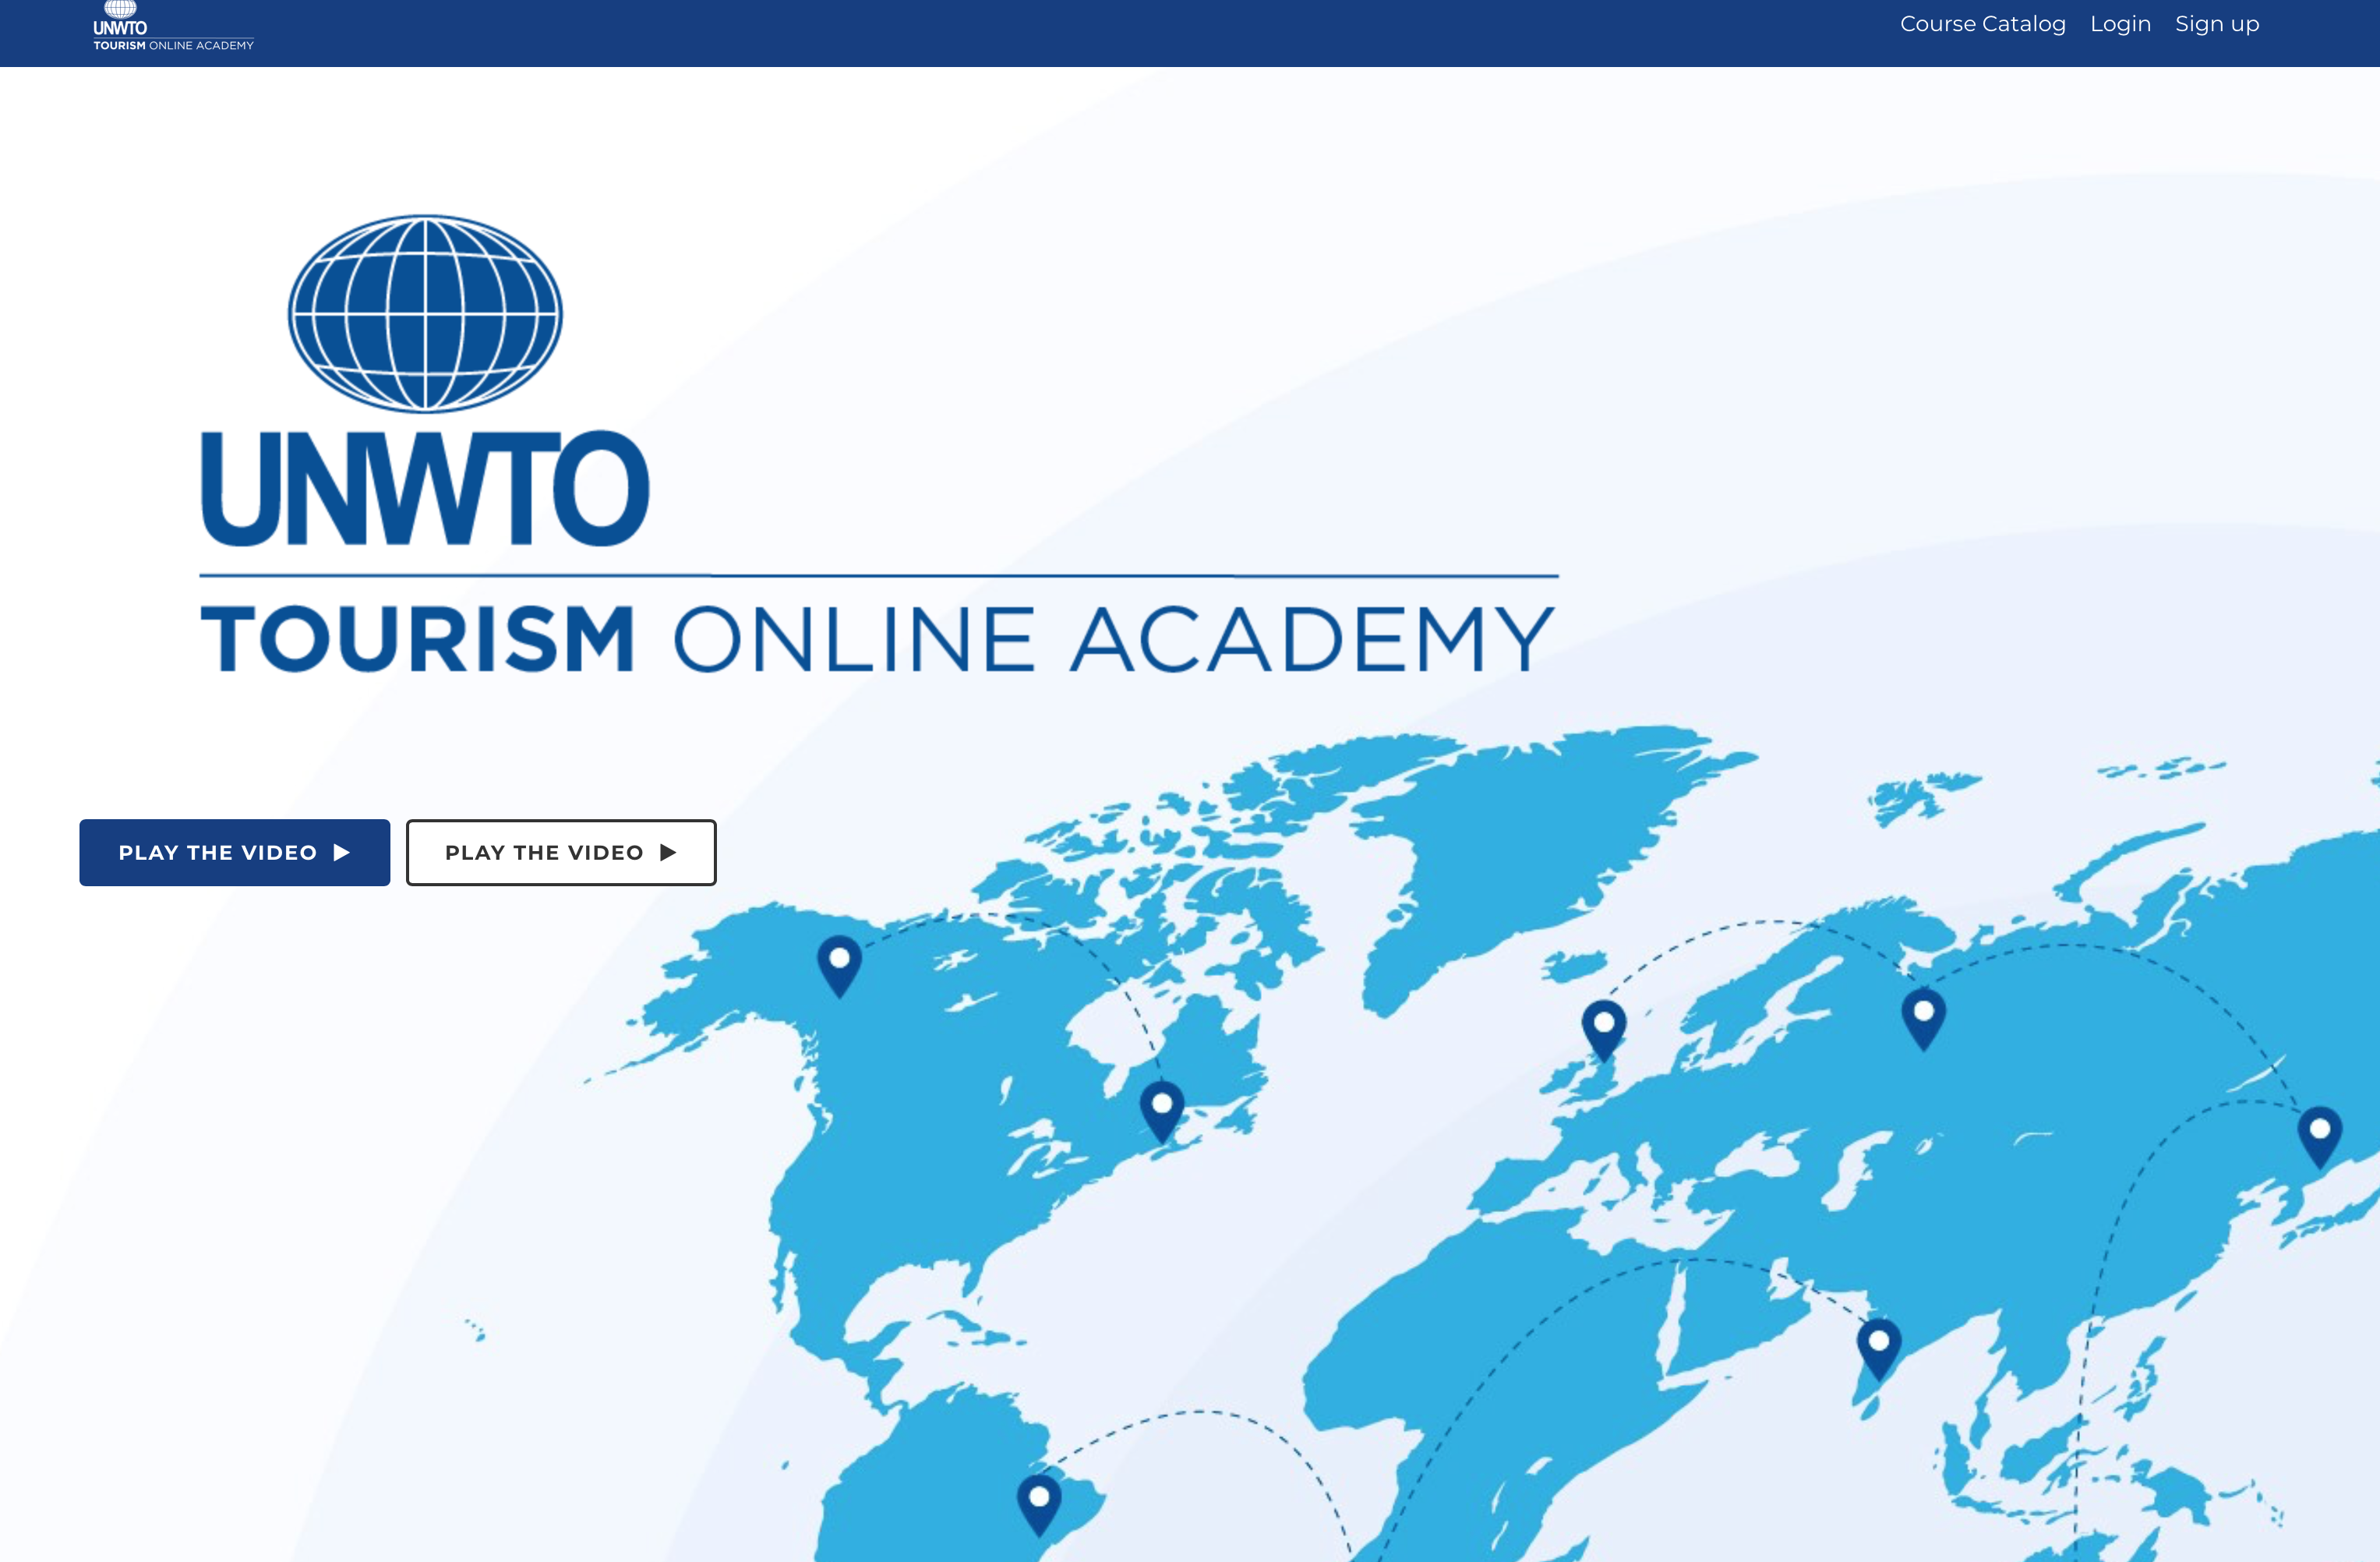 UNWTO Tourism Online Academy open to all